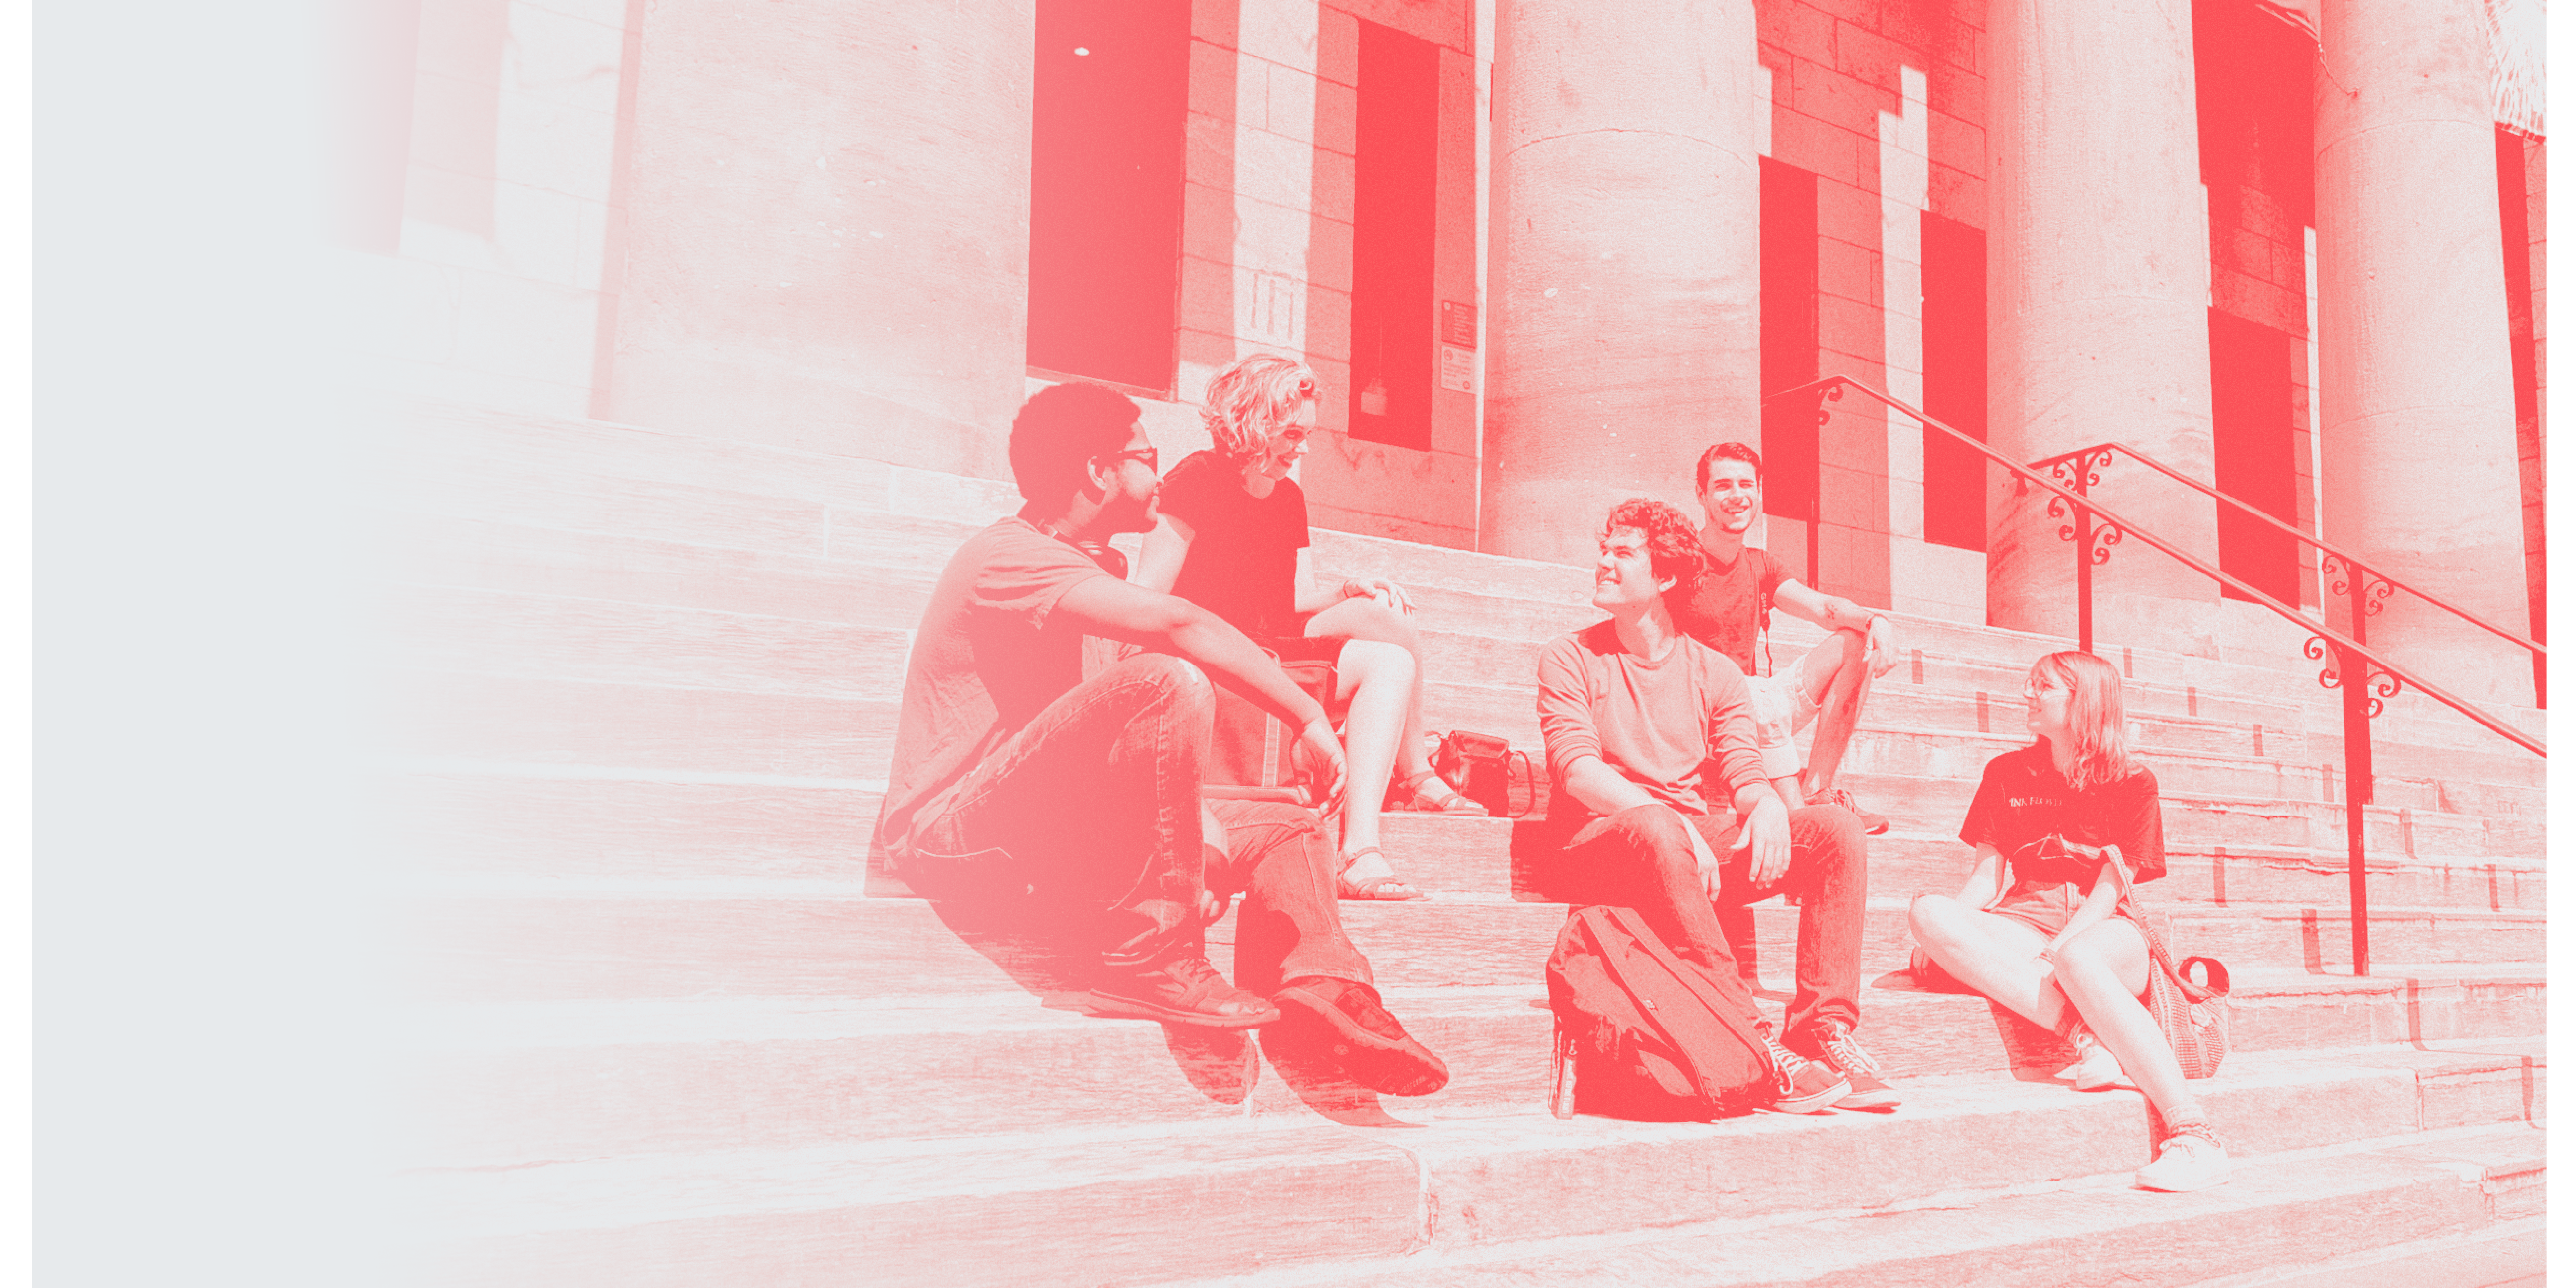 UArts students on the steps of Hamilton Hall with a red graphic overlay